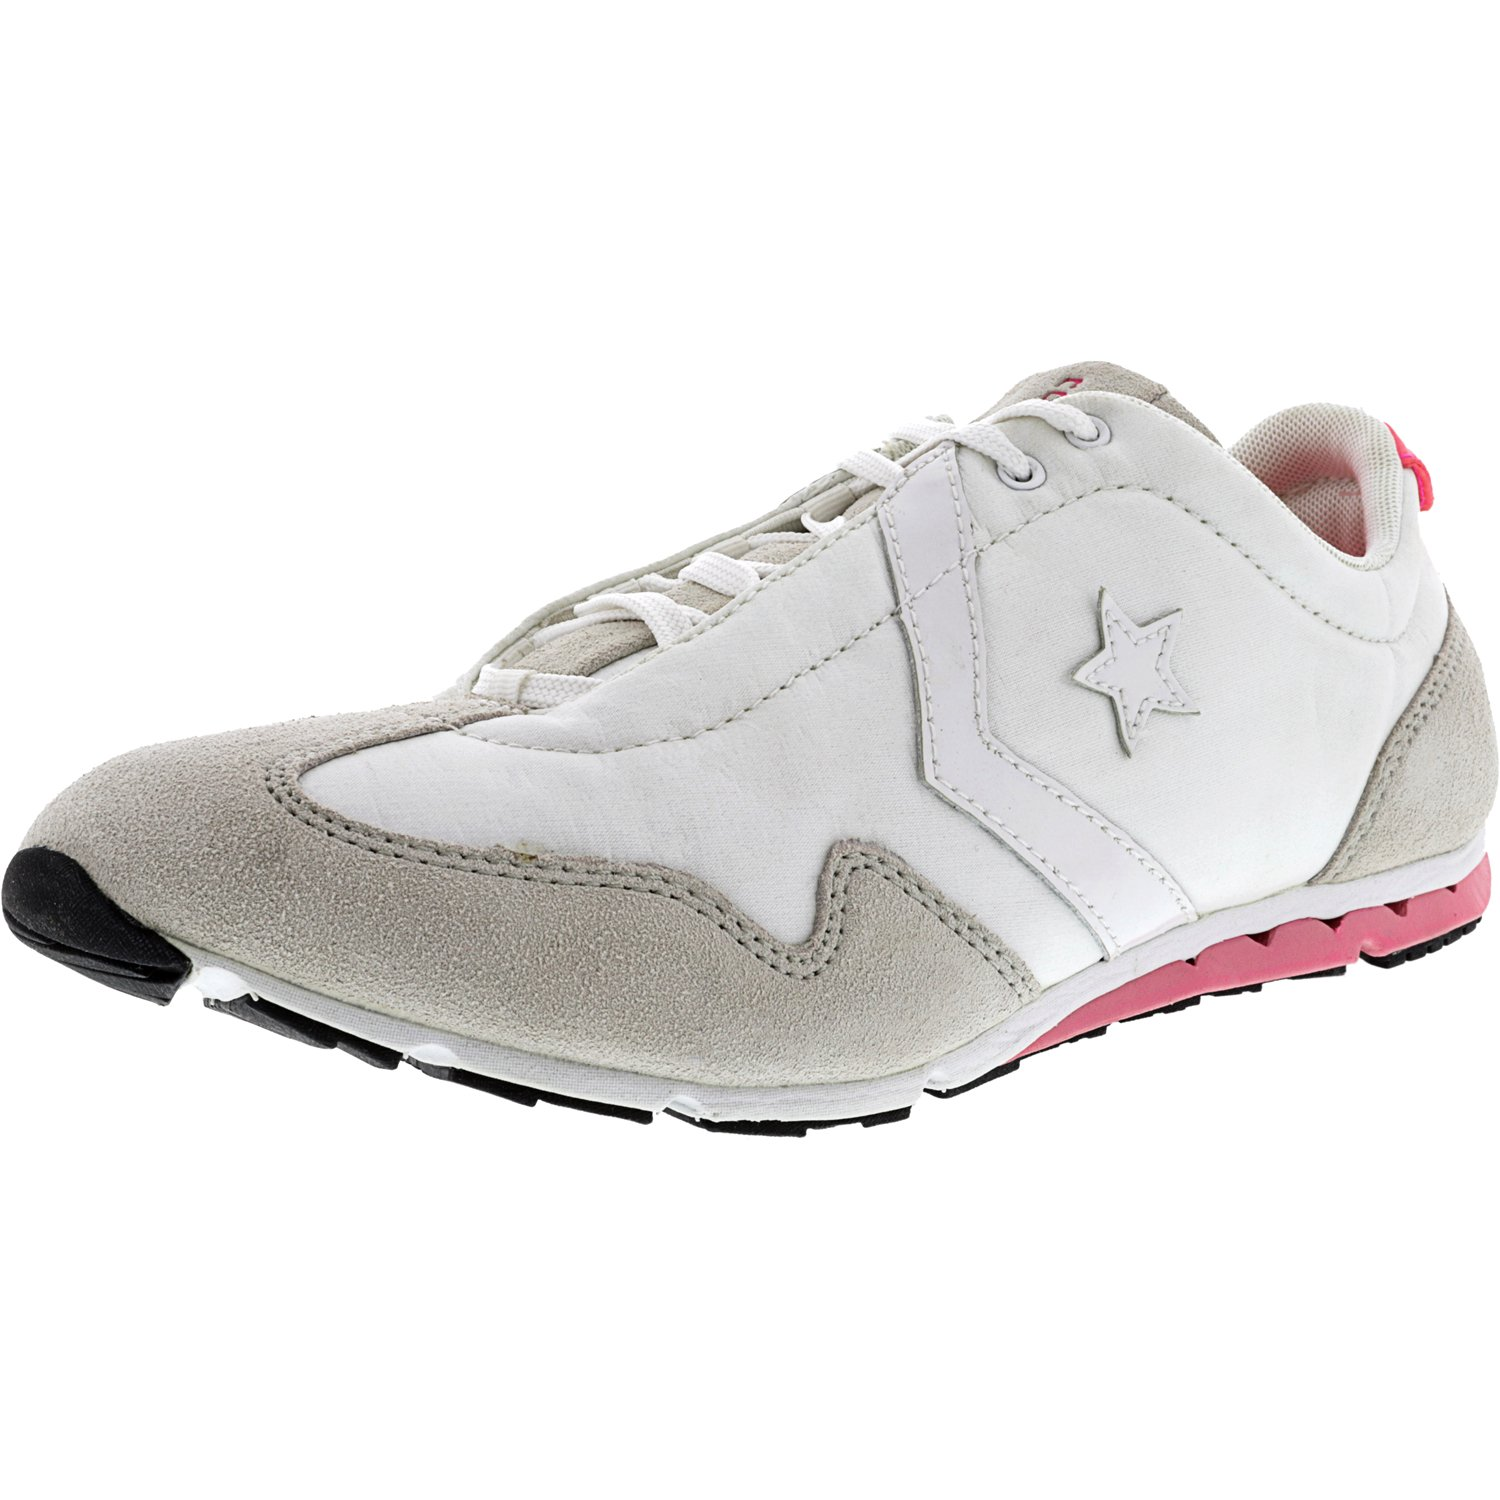 Converse Women's Revival Ox White / Pink Ankle-High Fabric Running Shoe - 10M